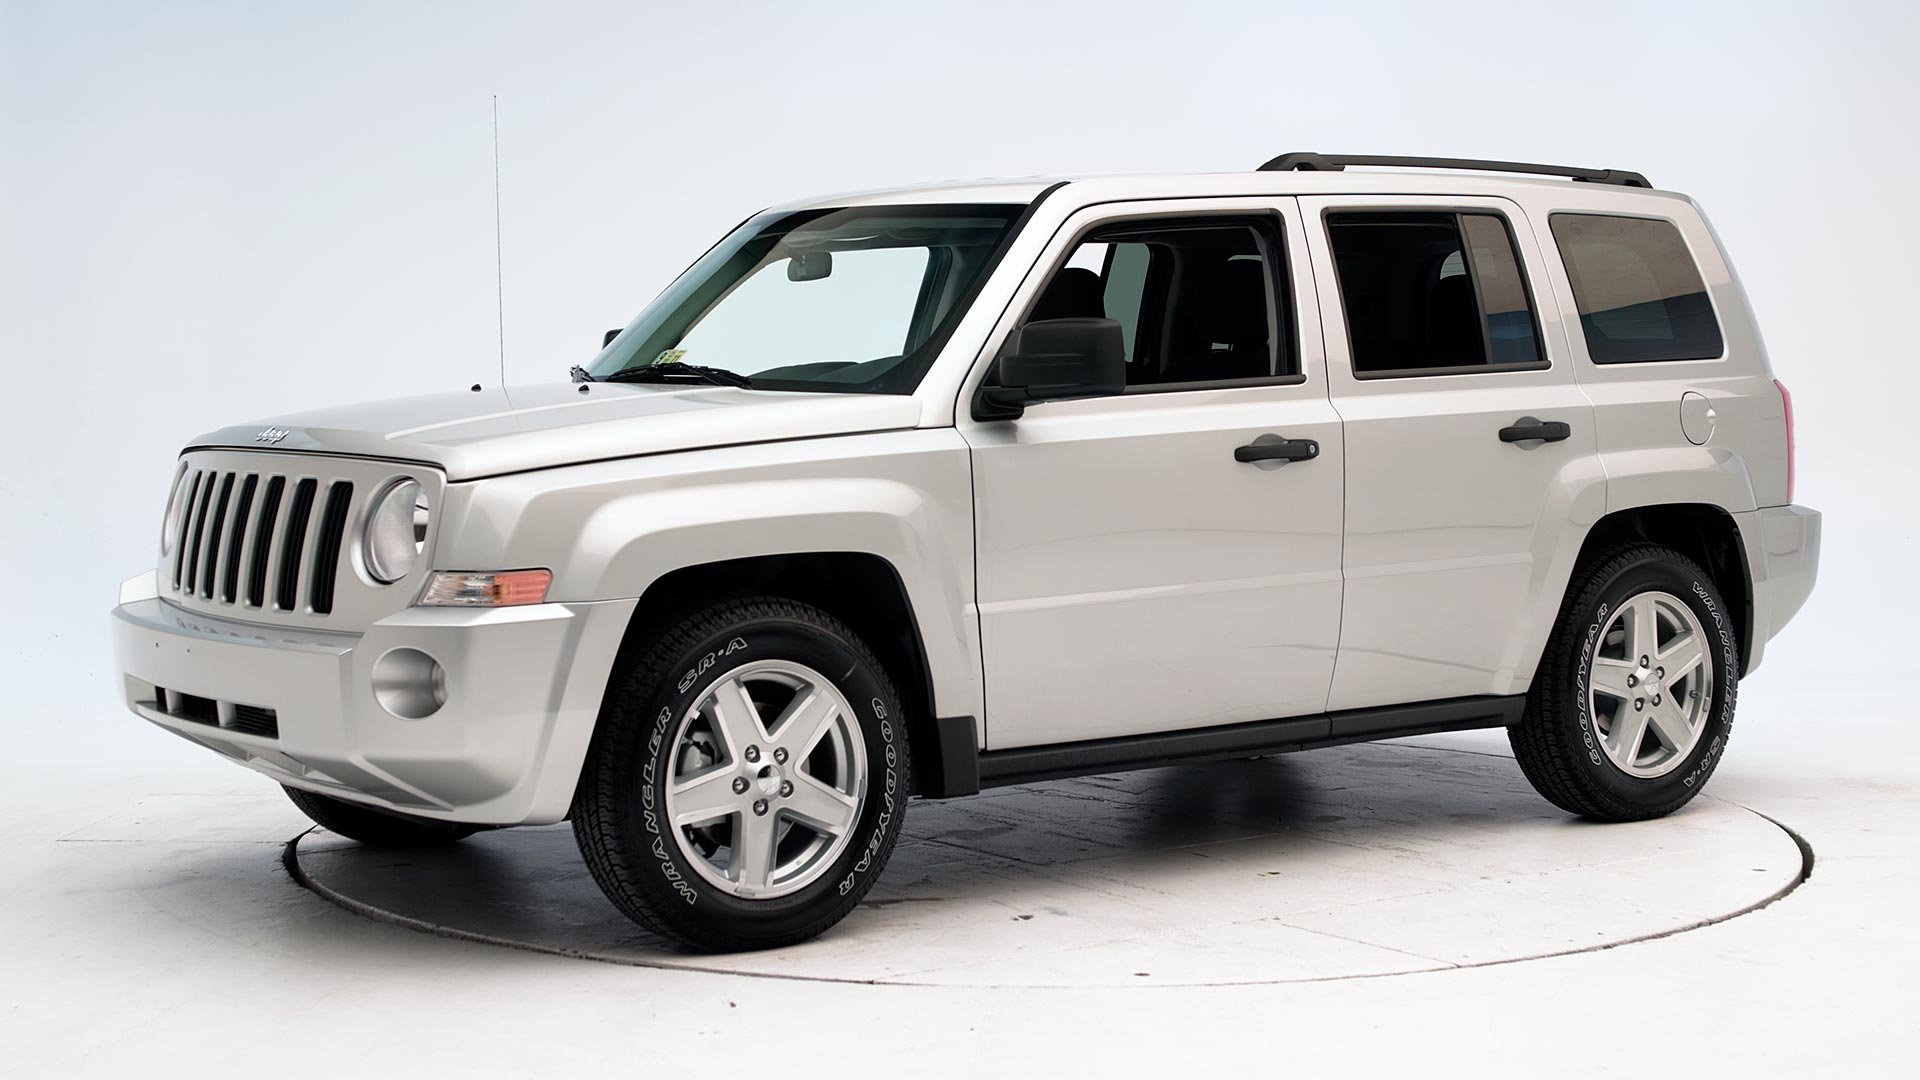 2011 Jeep Patriot 4-door SUV